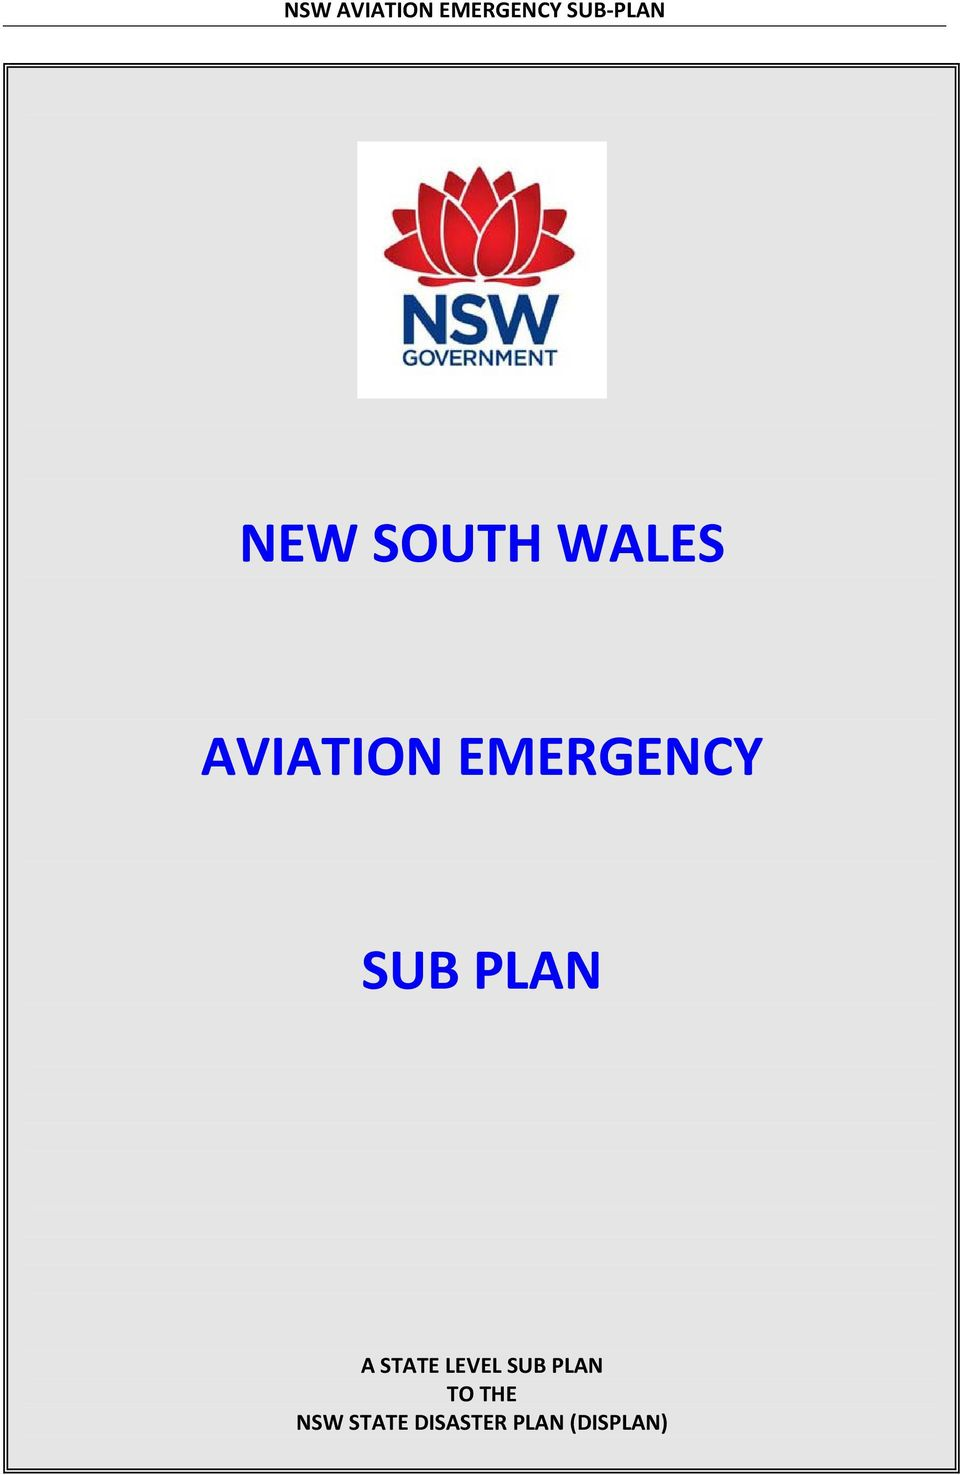 SUB PLAN A STATE LEVEL SUB PLAN TO